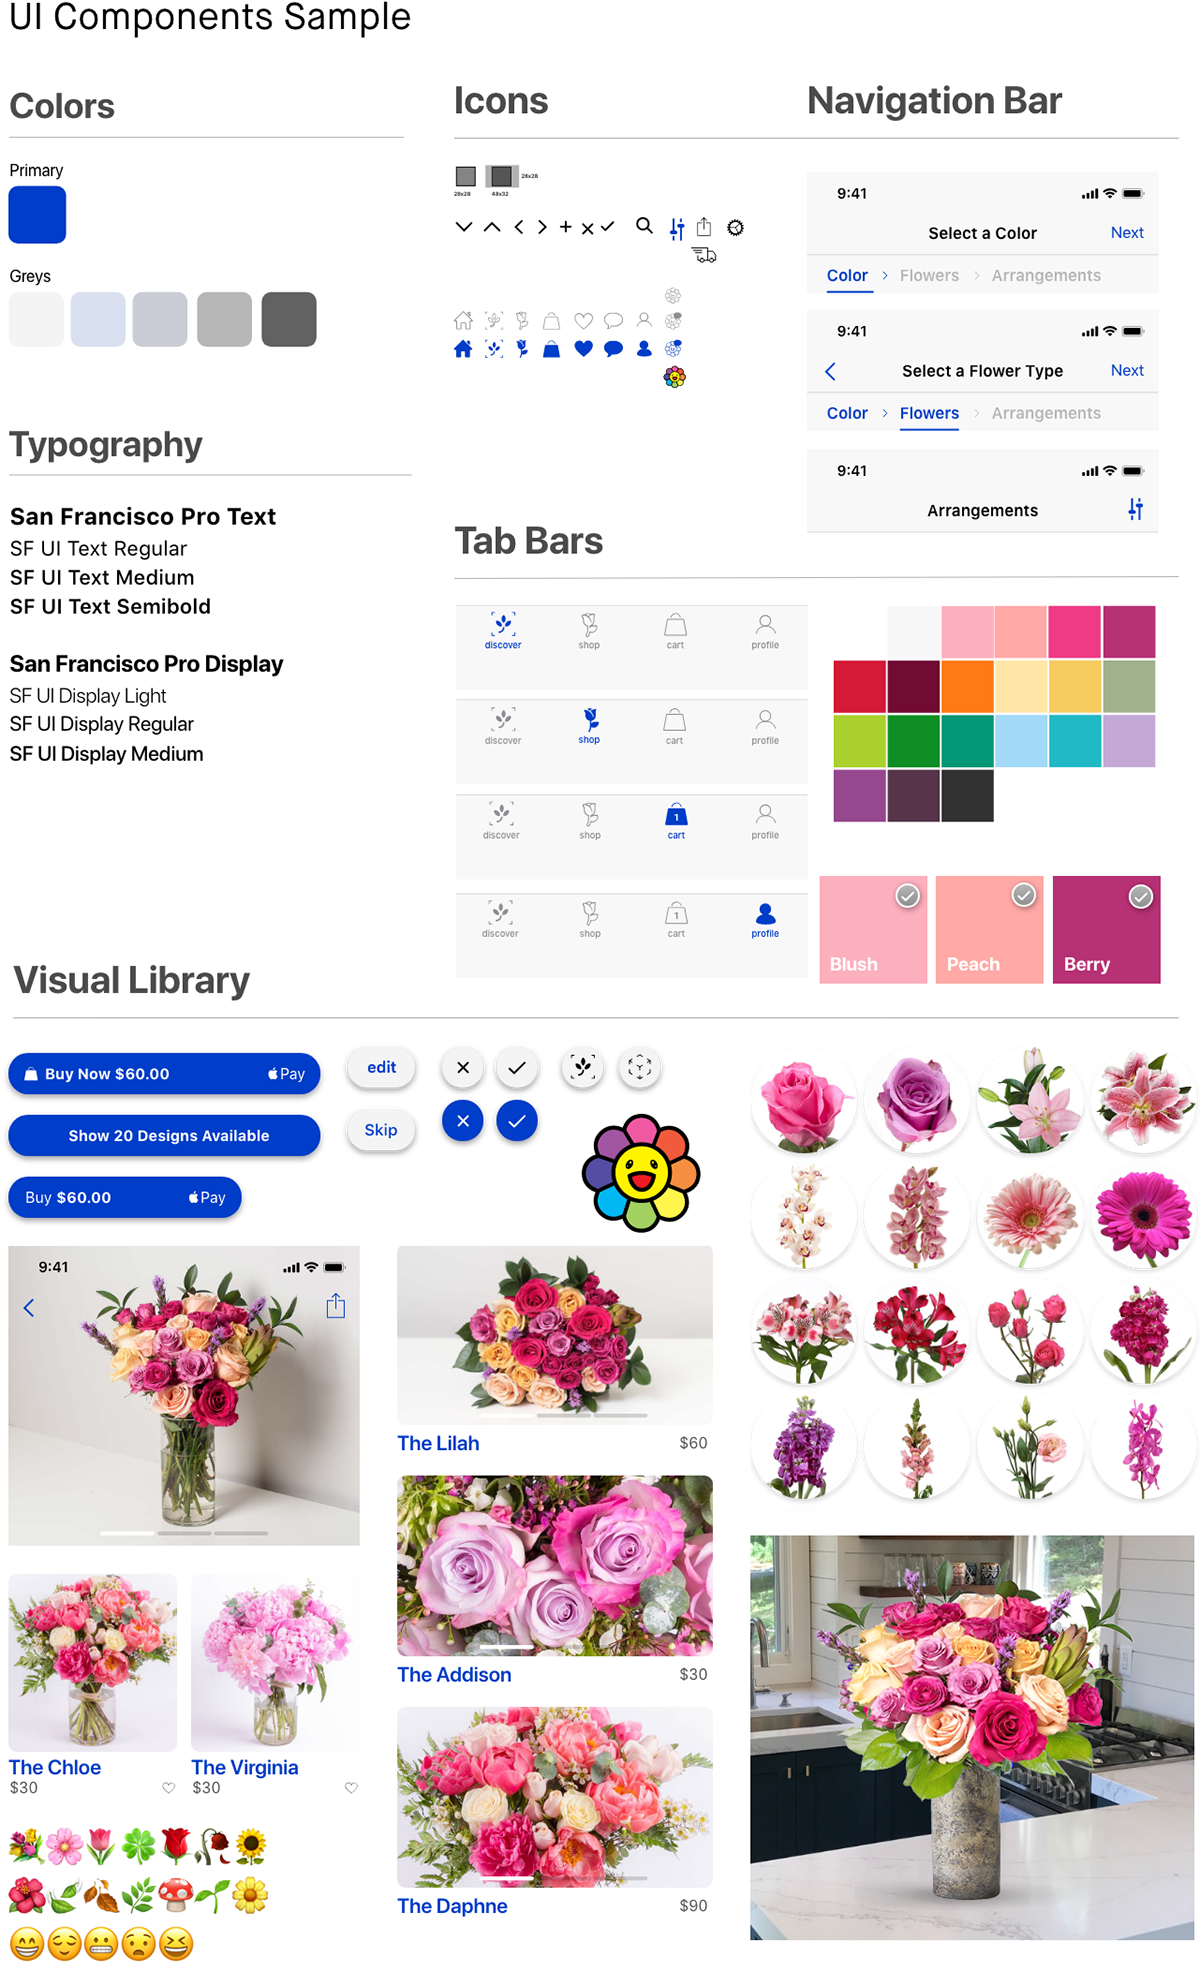 adobexd,user interface,user experience,design,design strategy,Ecommerce,Flowers,checkout,delivery,UI/UX